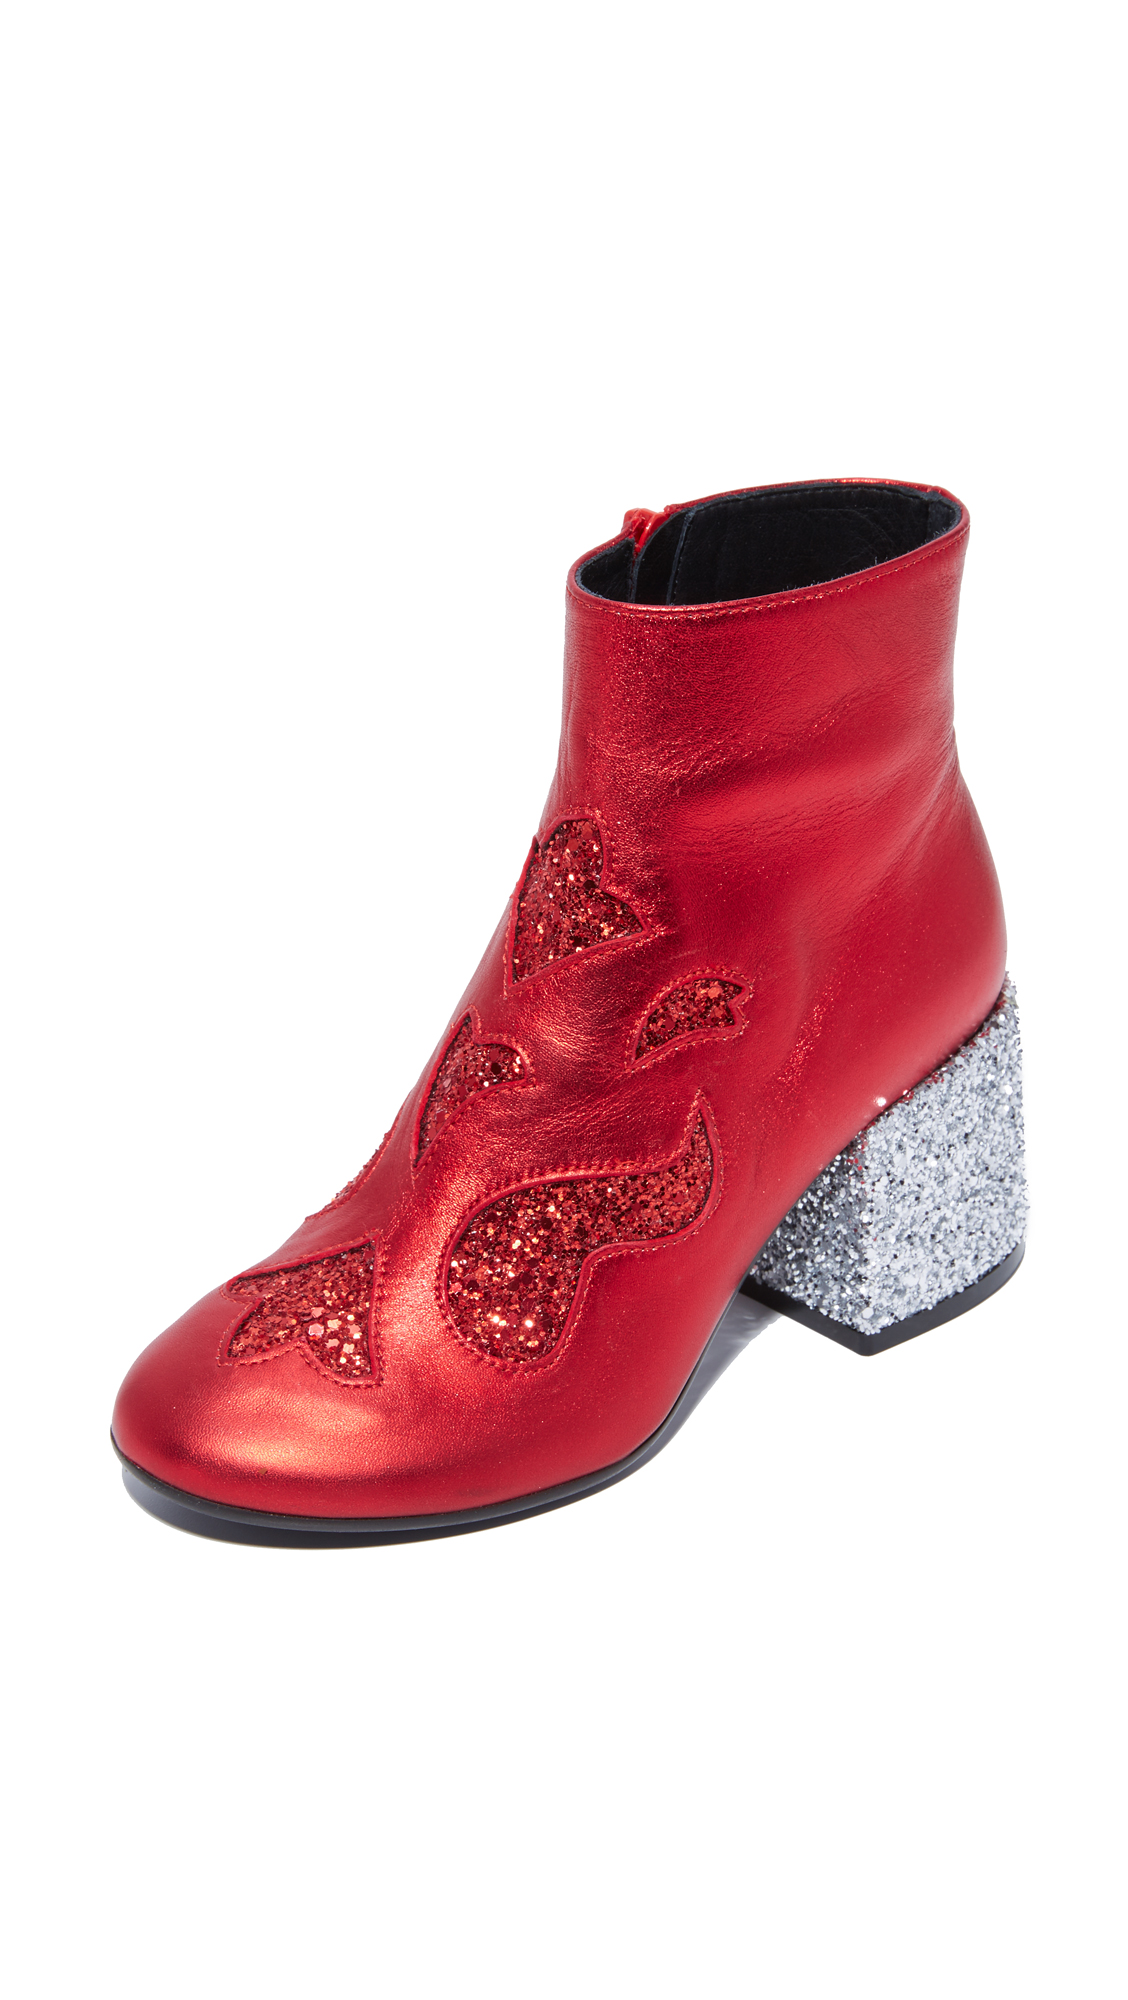 Photo of Mm6 Glam Rock Flare Booties Red-Red-Silver - MM6 online